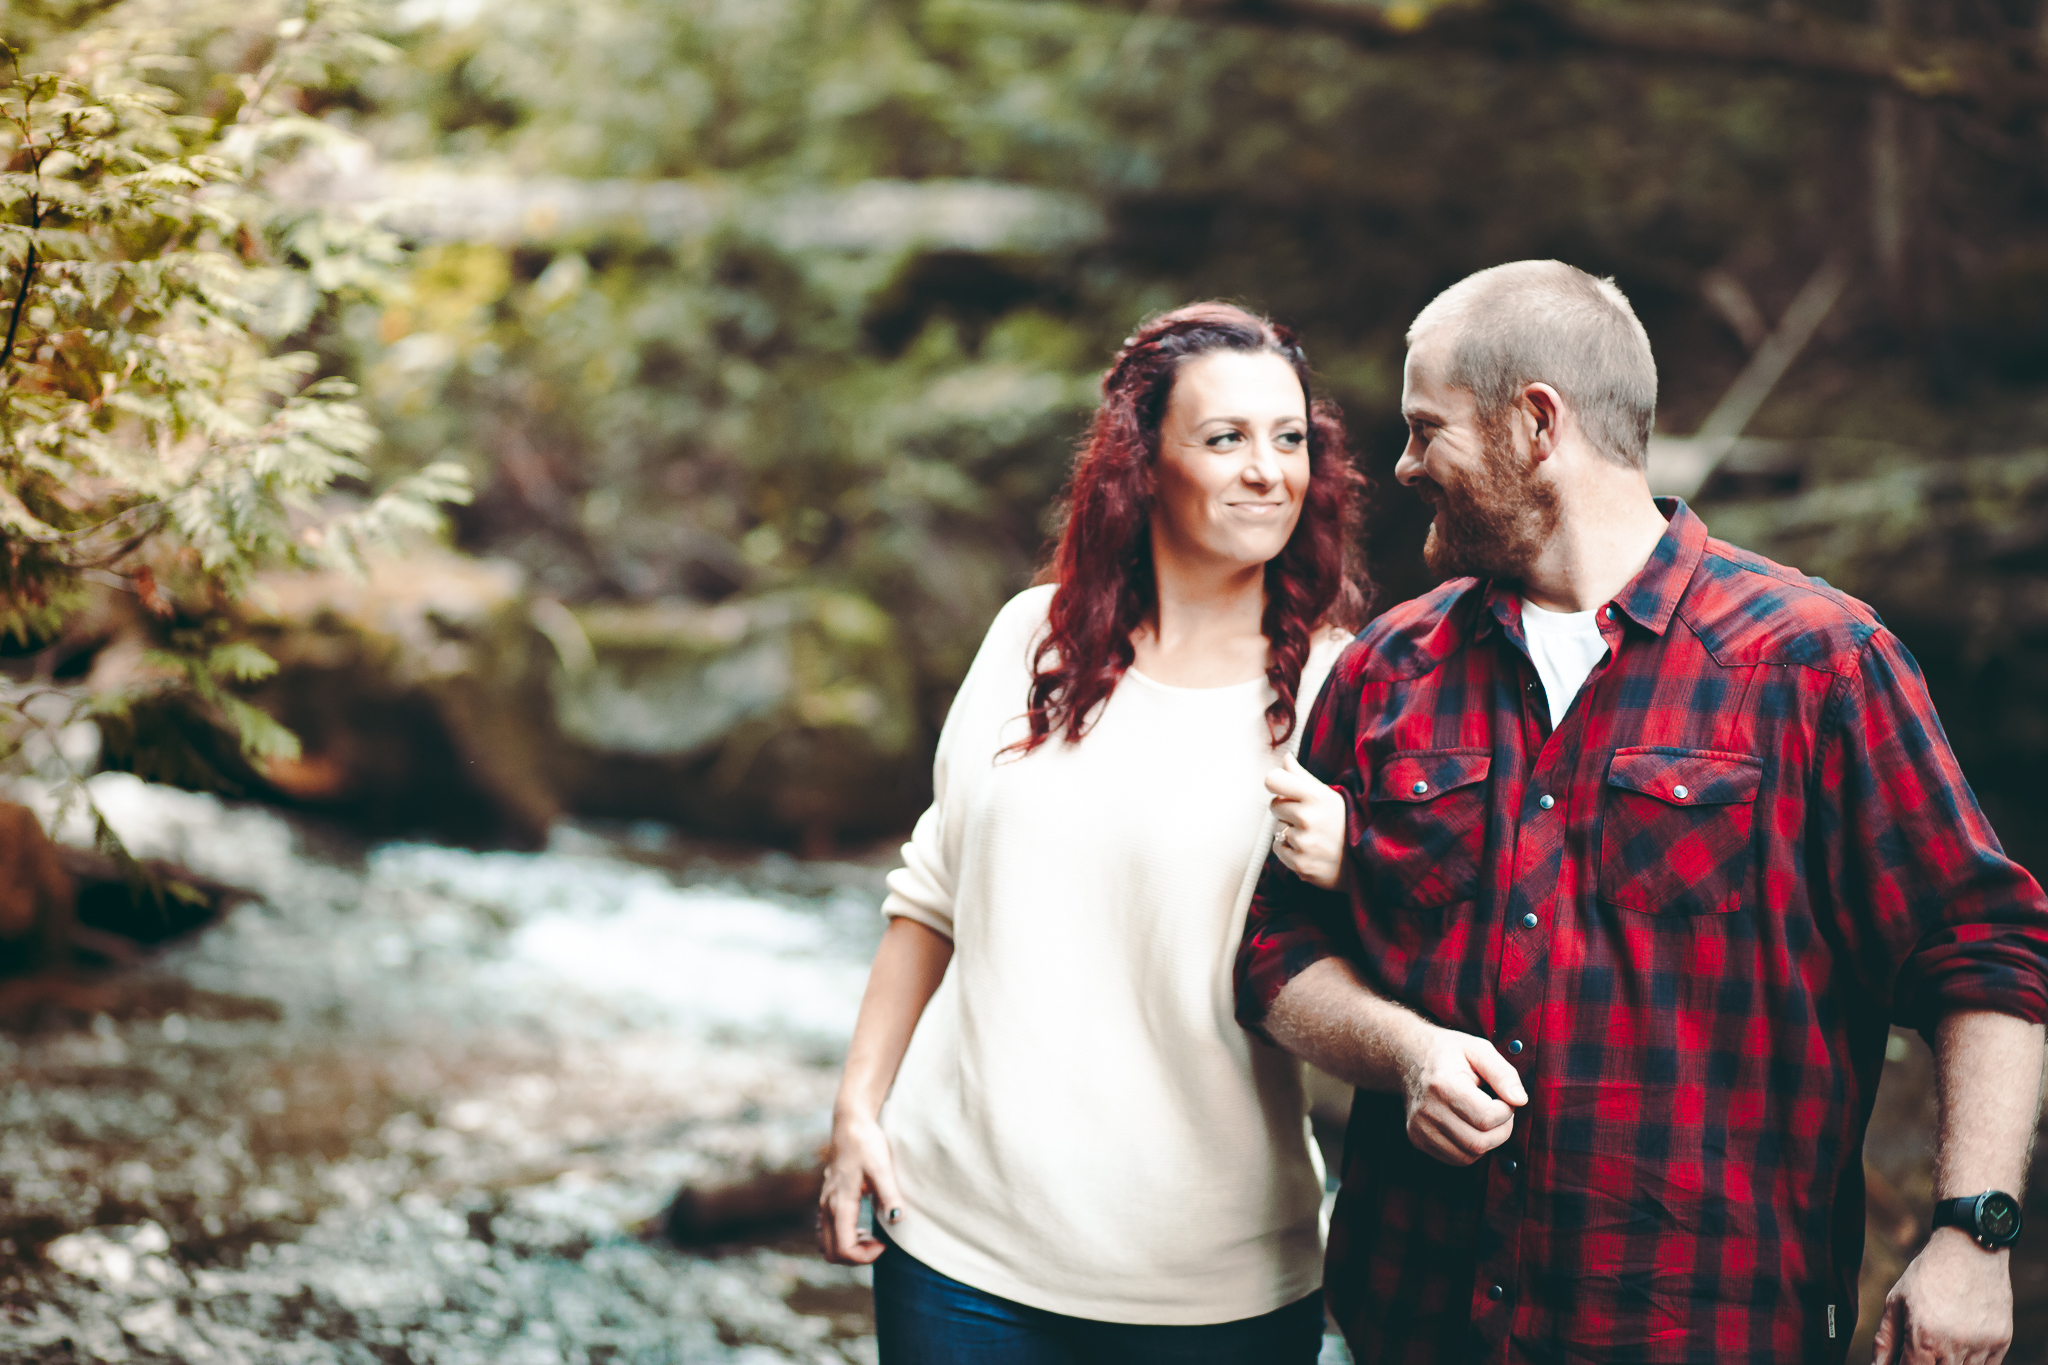 Amy D Photography- Barrie Wedding Photography- Engagement Session- Fall Engagement- Engagement Poses- Barrie Weddings- Wedding Photographer-95.jpg